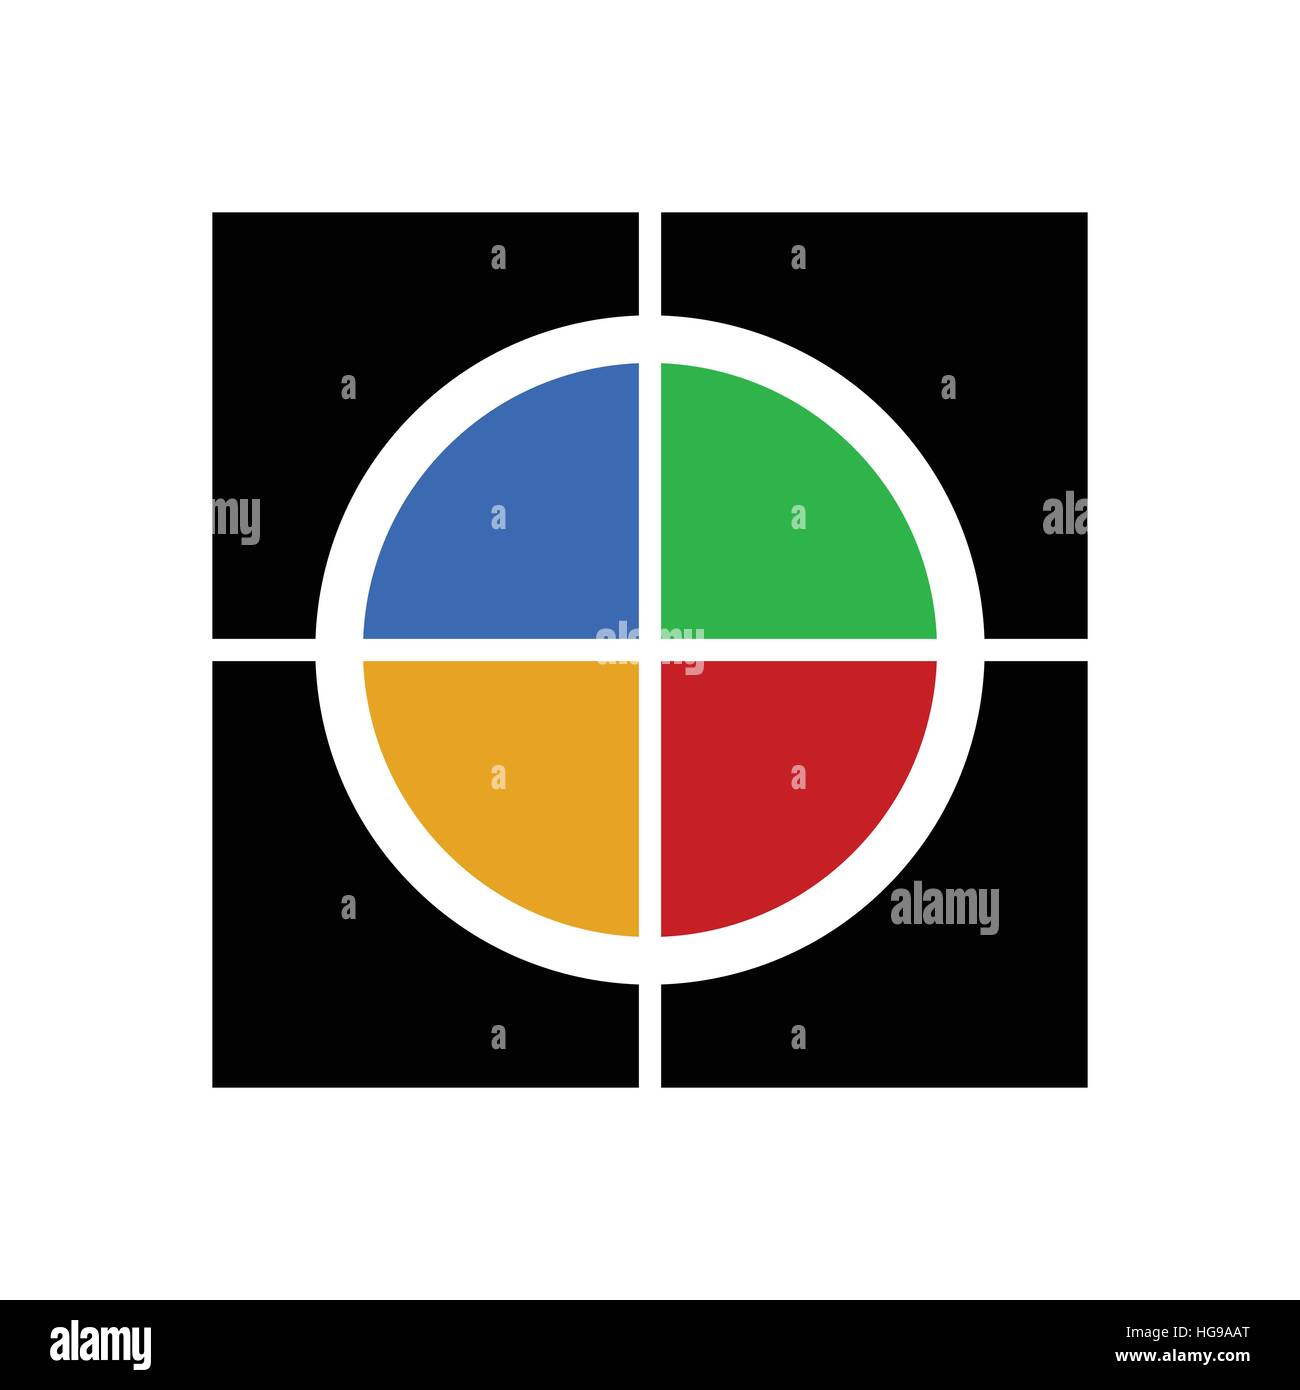 Colorful symbol template for logotypes, icons - Stock Image